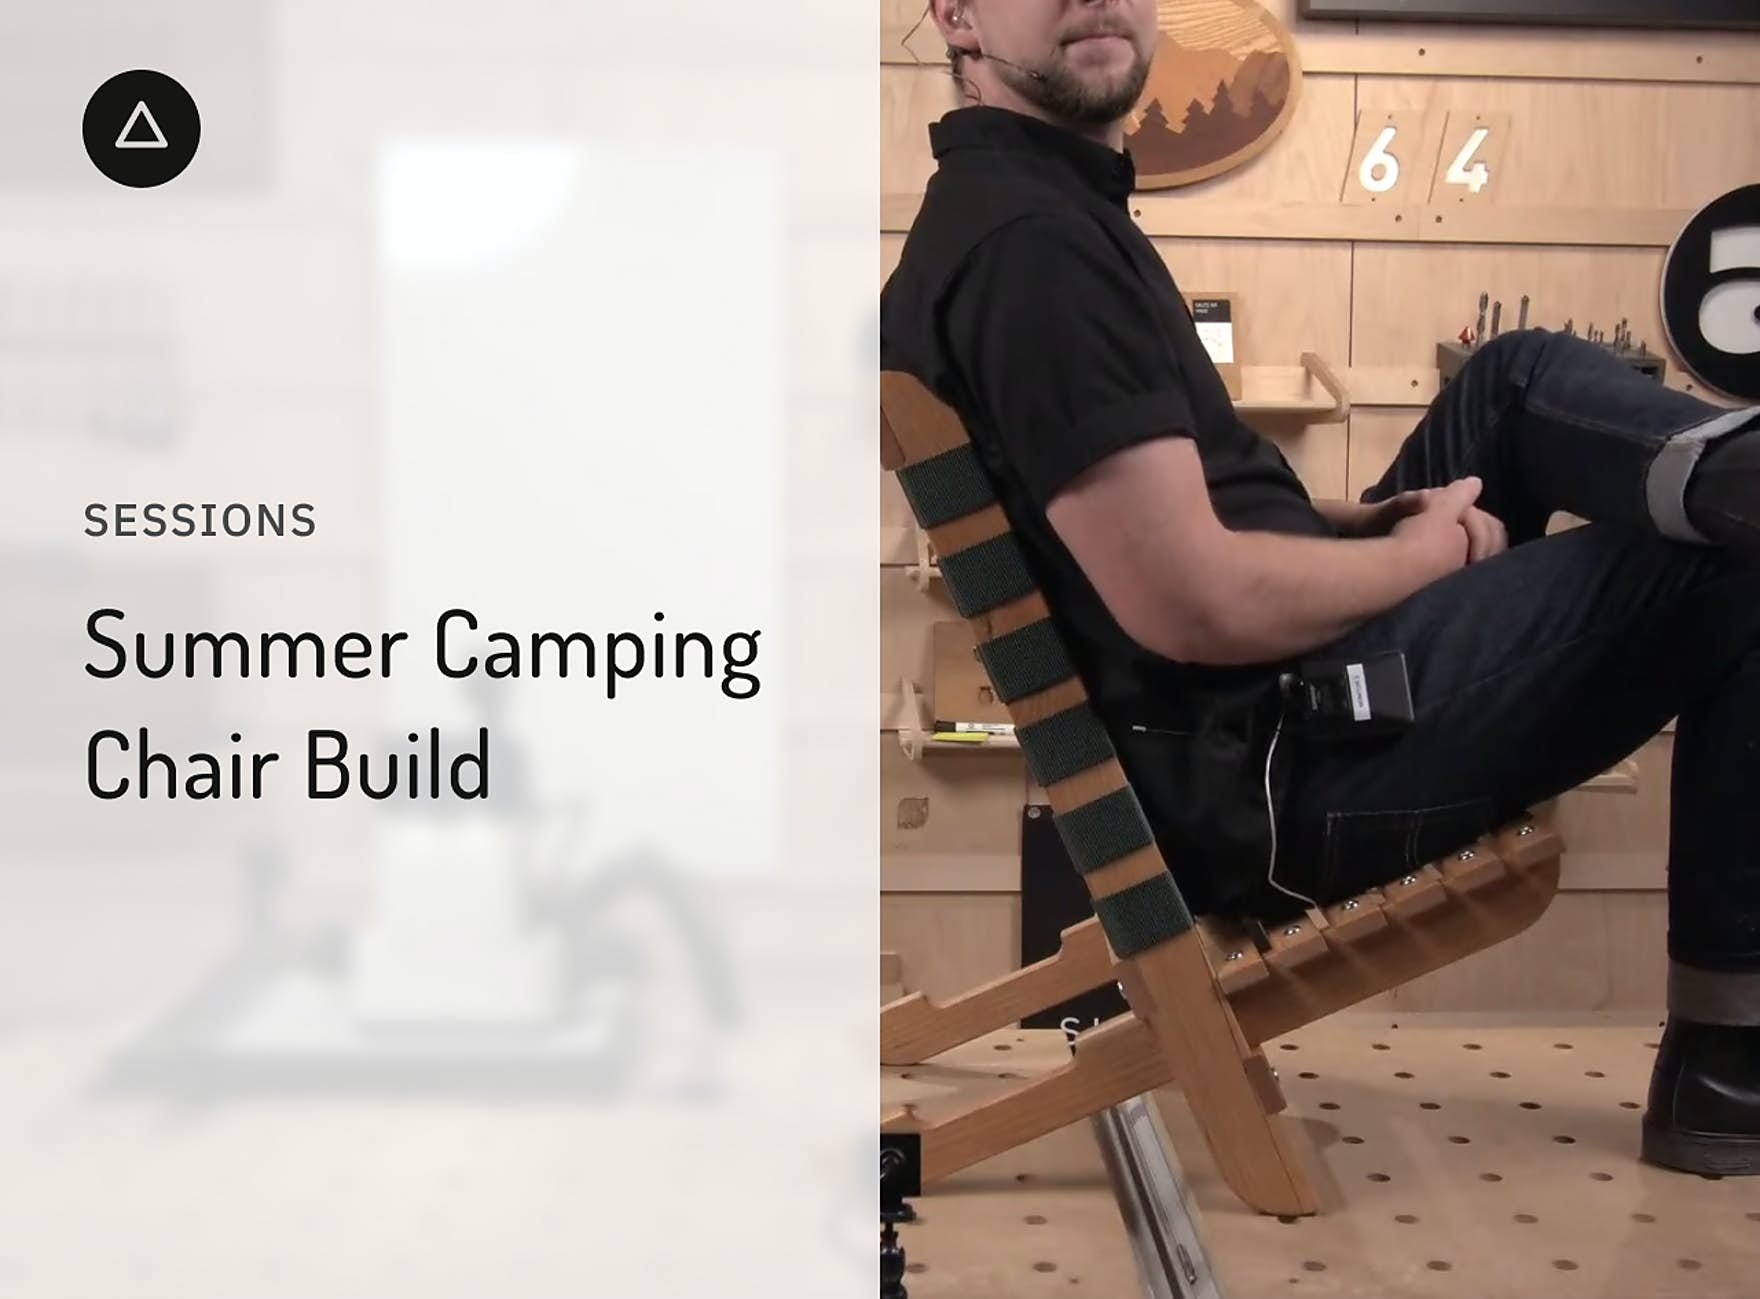 Jake sitting a a camping chair on top of a workbench